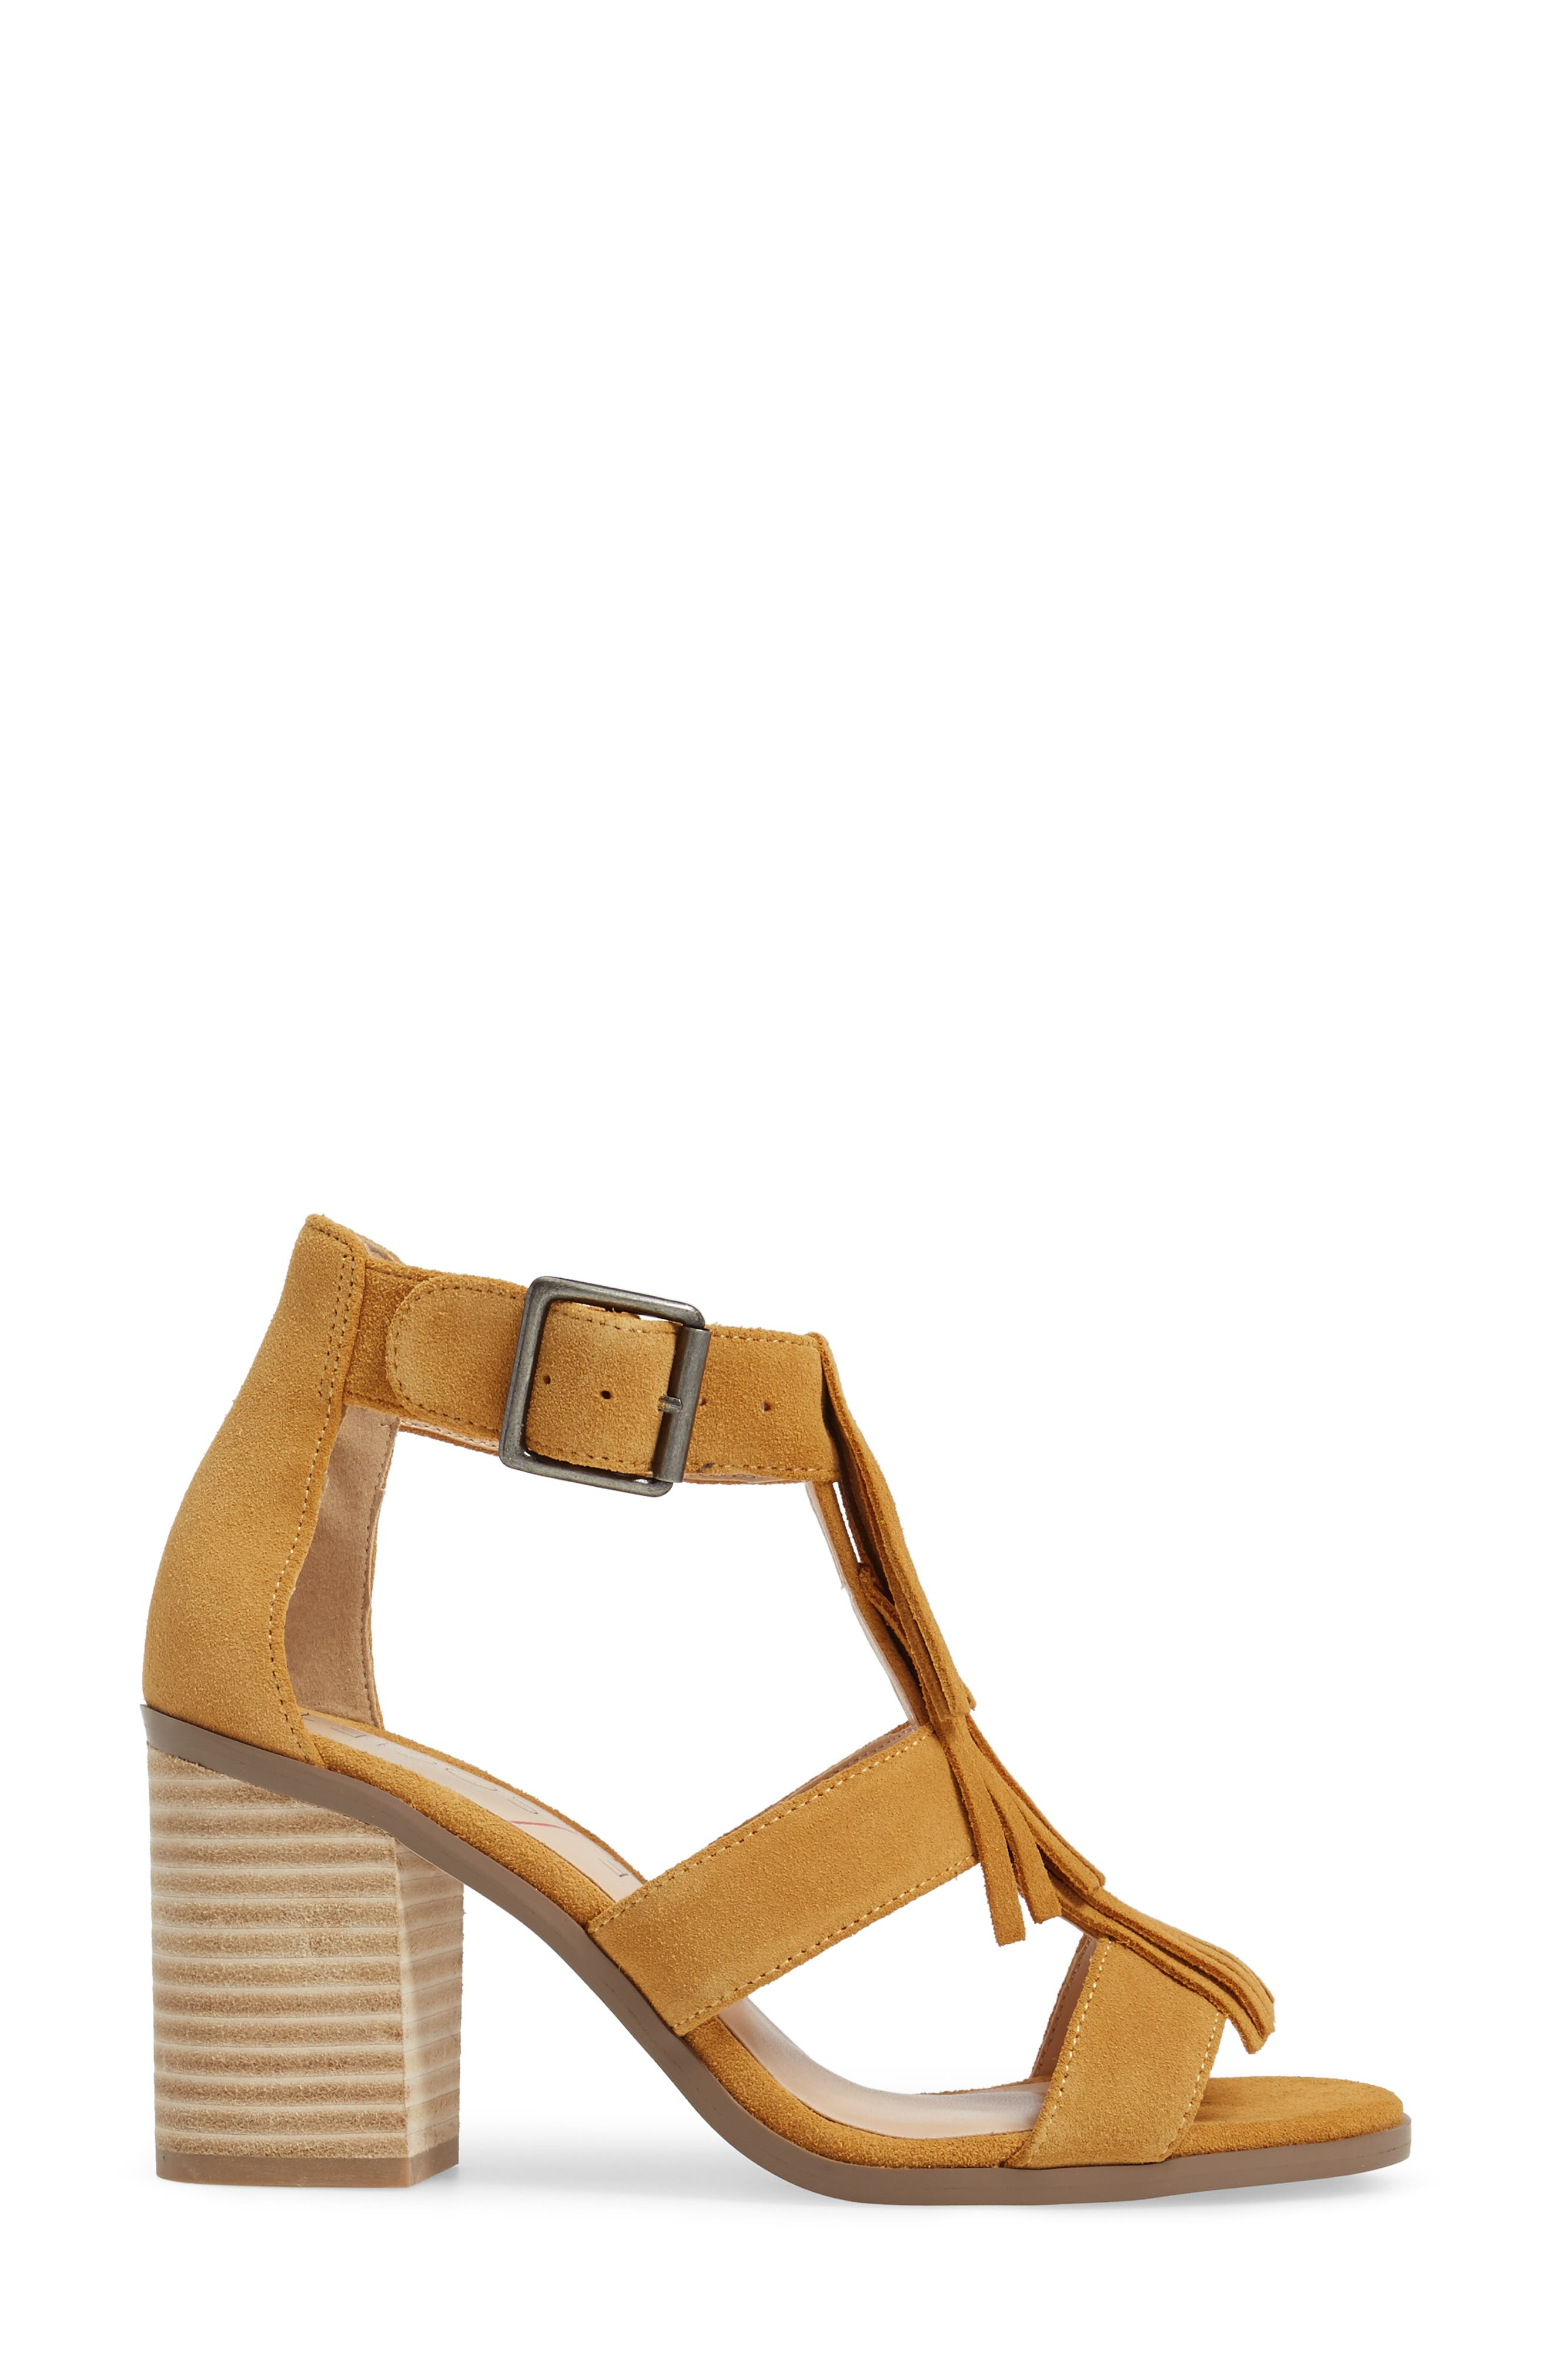 'Delilah' Fringe Sandal,                             Alternate thumbnail 20, color,